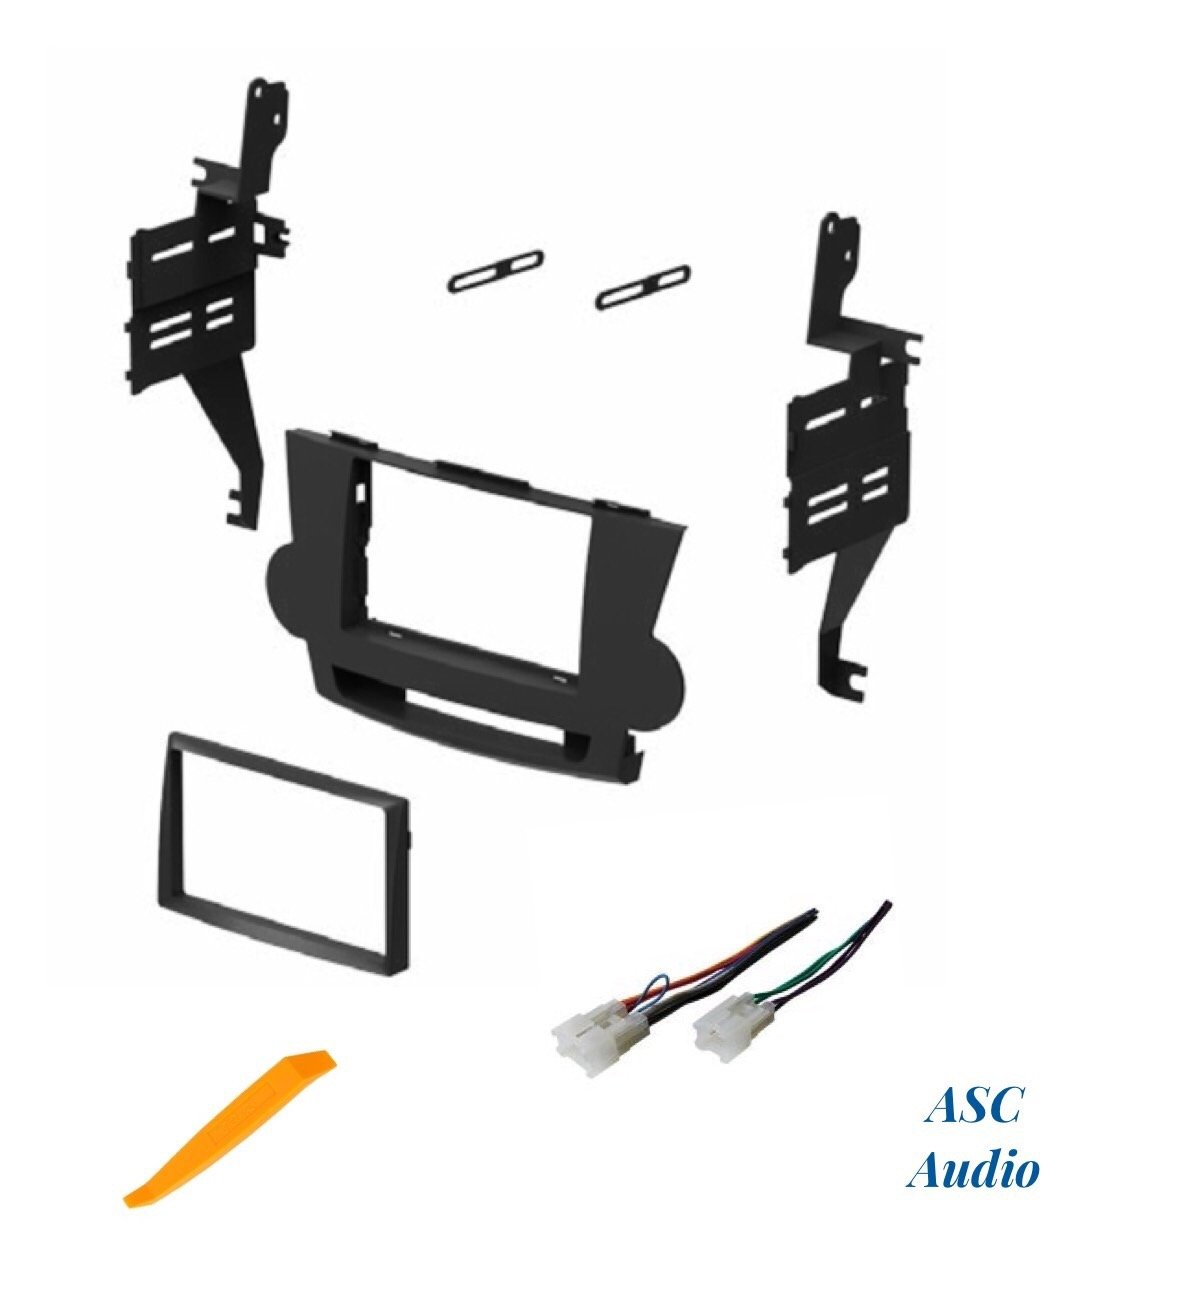 No JBL ASC Audio Car Stereo Dash Install Kit and Wire Harness for Installing an Aftermarket Double Din Radio for 2008 2009 2010 2011 Toyota Highlander Factory Premium Amp Other 4350460032